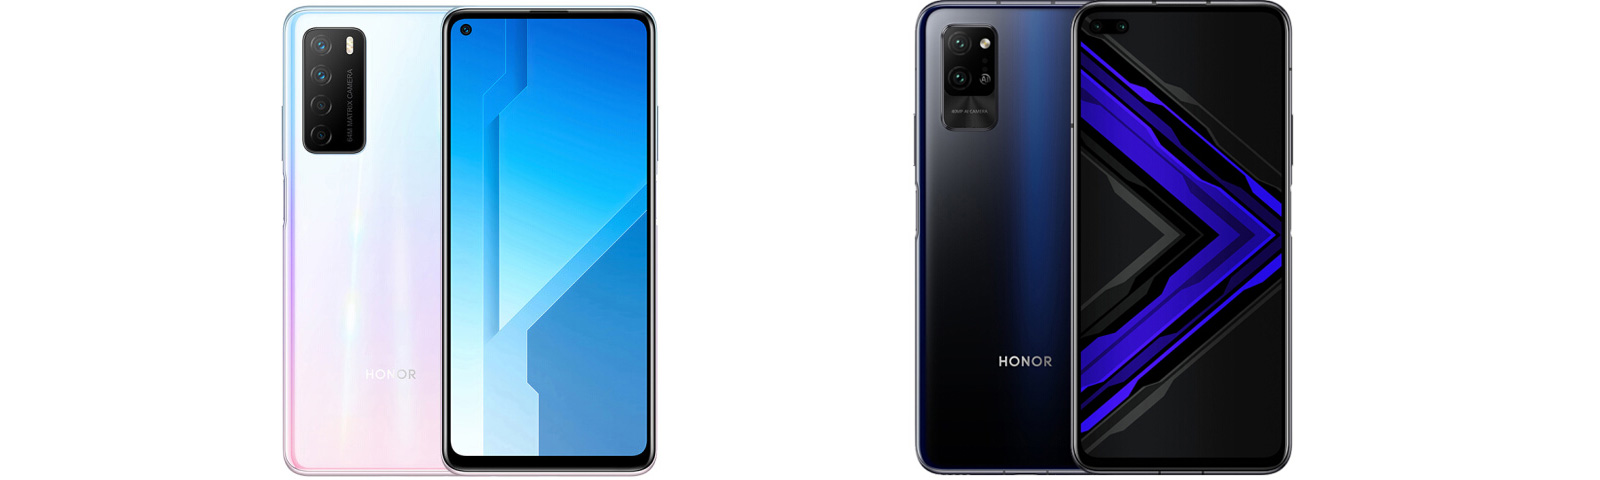 Huawei unveils the Honor Play 4 5G and Honor Play 4 Pro - specifications and prices